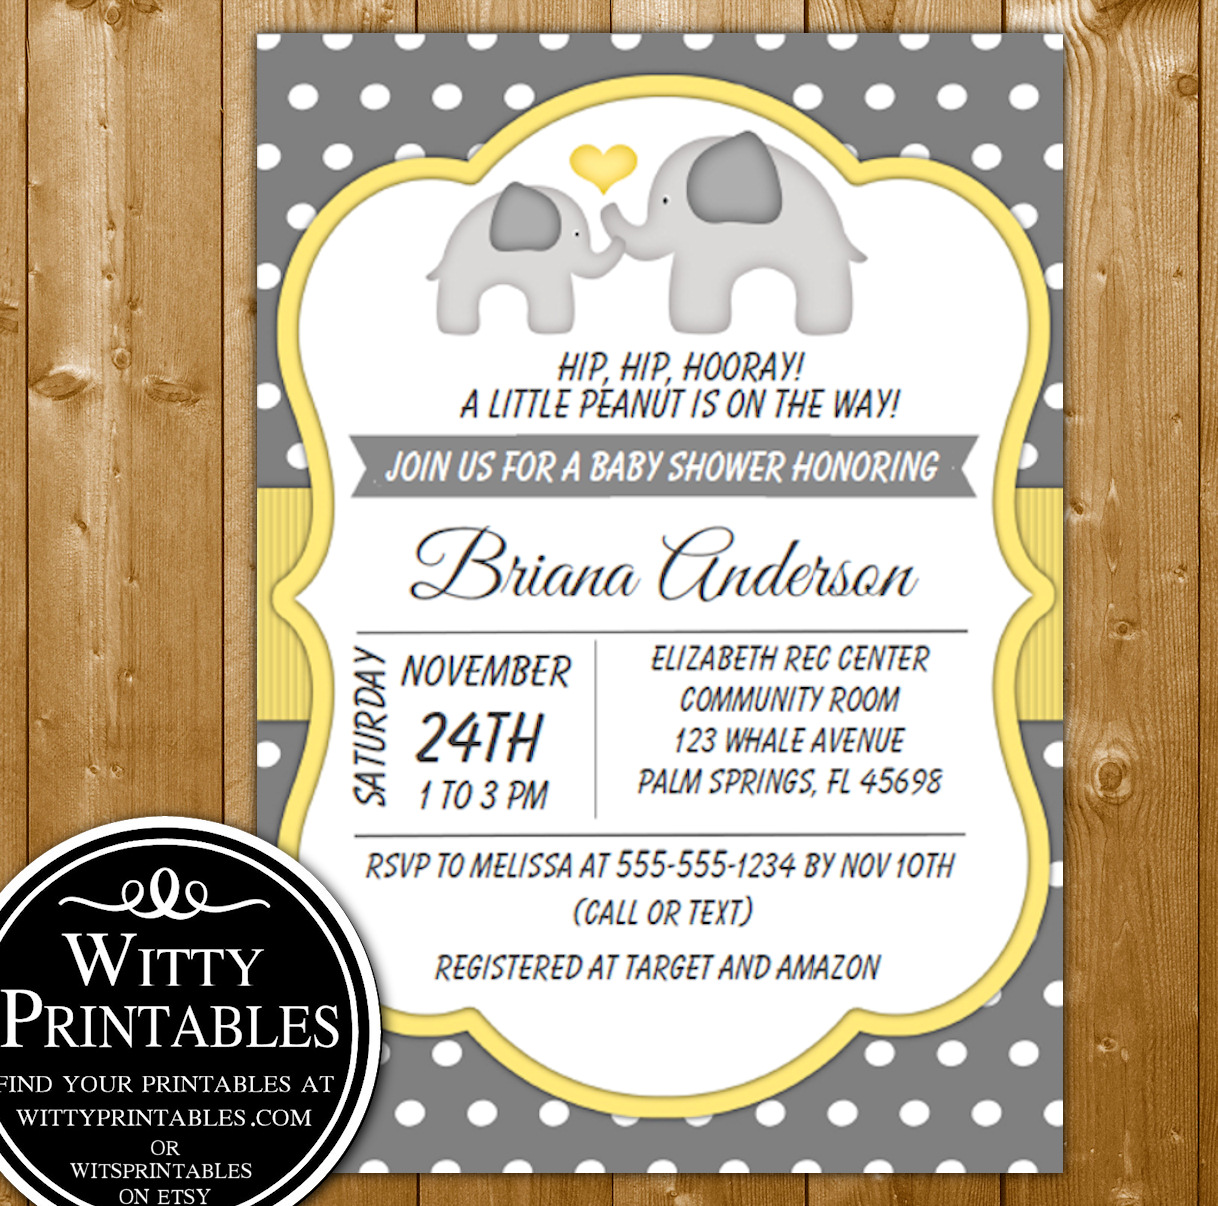 Baby shower invitation yellow elephants for a neutral baby shower baby shower invitation elephant baby shower yellow neutral baby shower filmwisefo